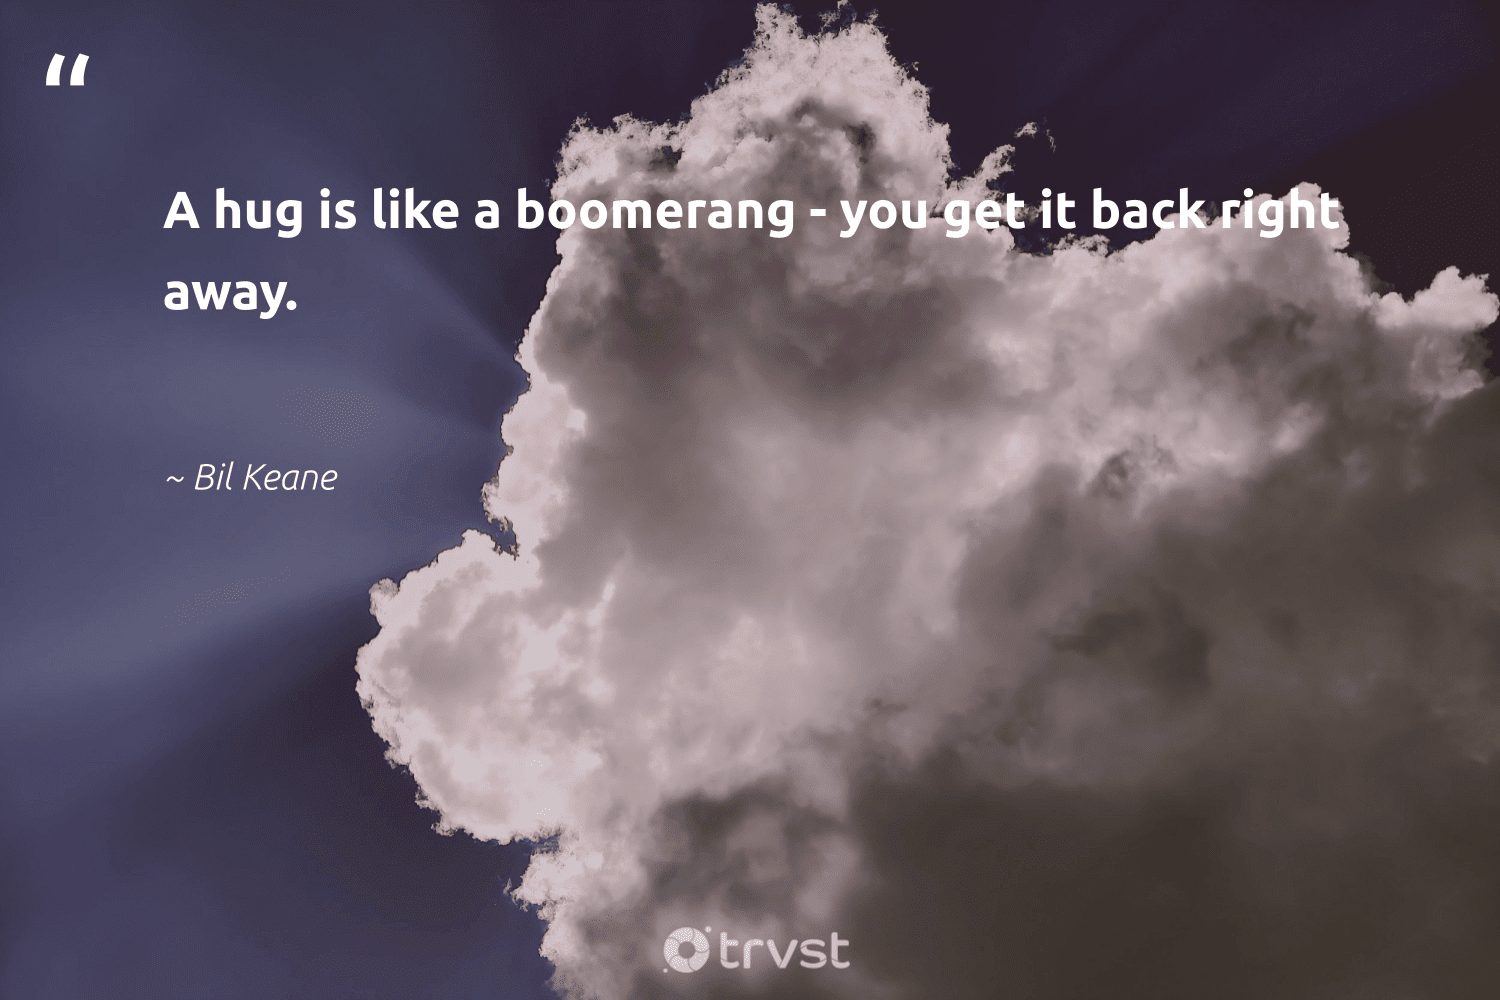 """""""A hug is like a boomerang - you get it back right away.""""  - Bil Keane #trvst #quotes #begreat #impact #mindset #takeaction #nevergiveup #socialimpact #health #beinspired #changemakers #thinkgreen"""